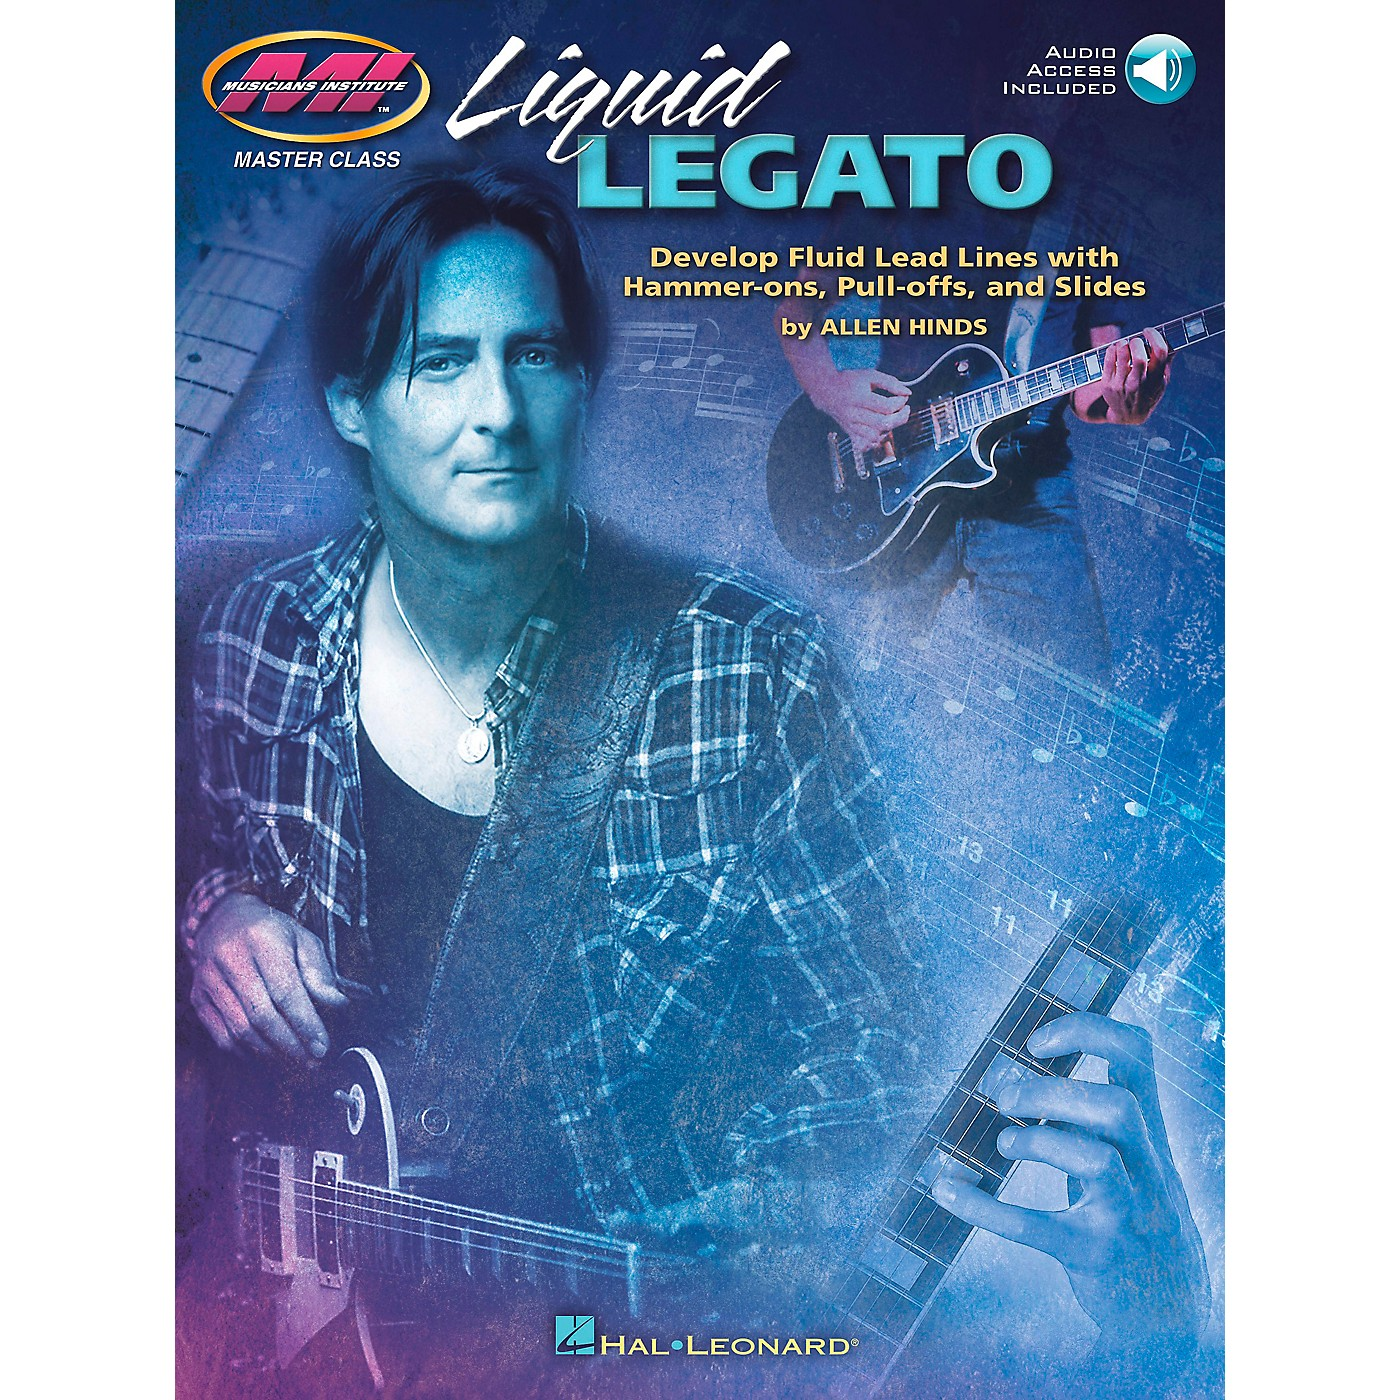 Hal Leonard Liquid Legato - Develop Fluid Lead Lines with Hammer-Ons, Pull-Offs and Slides Book/CD thumbnail